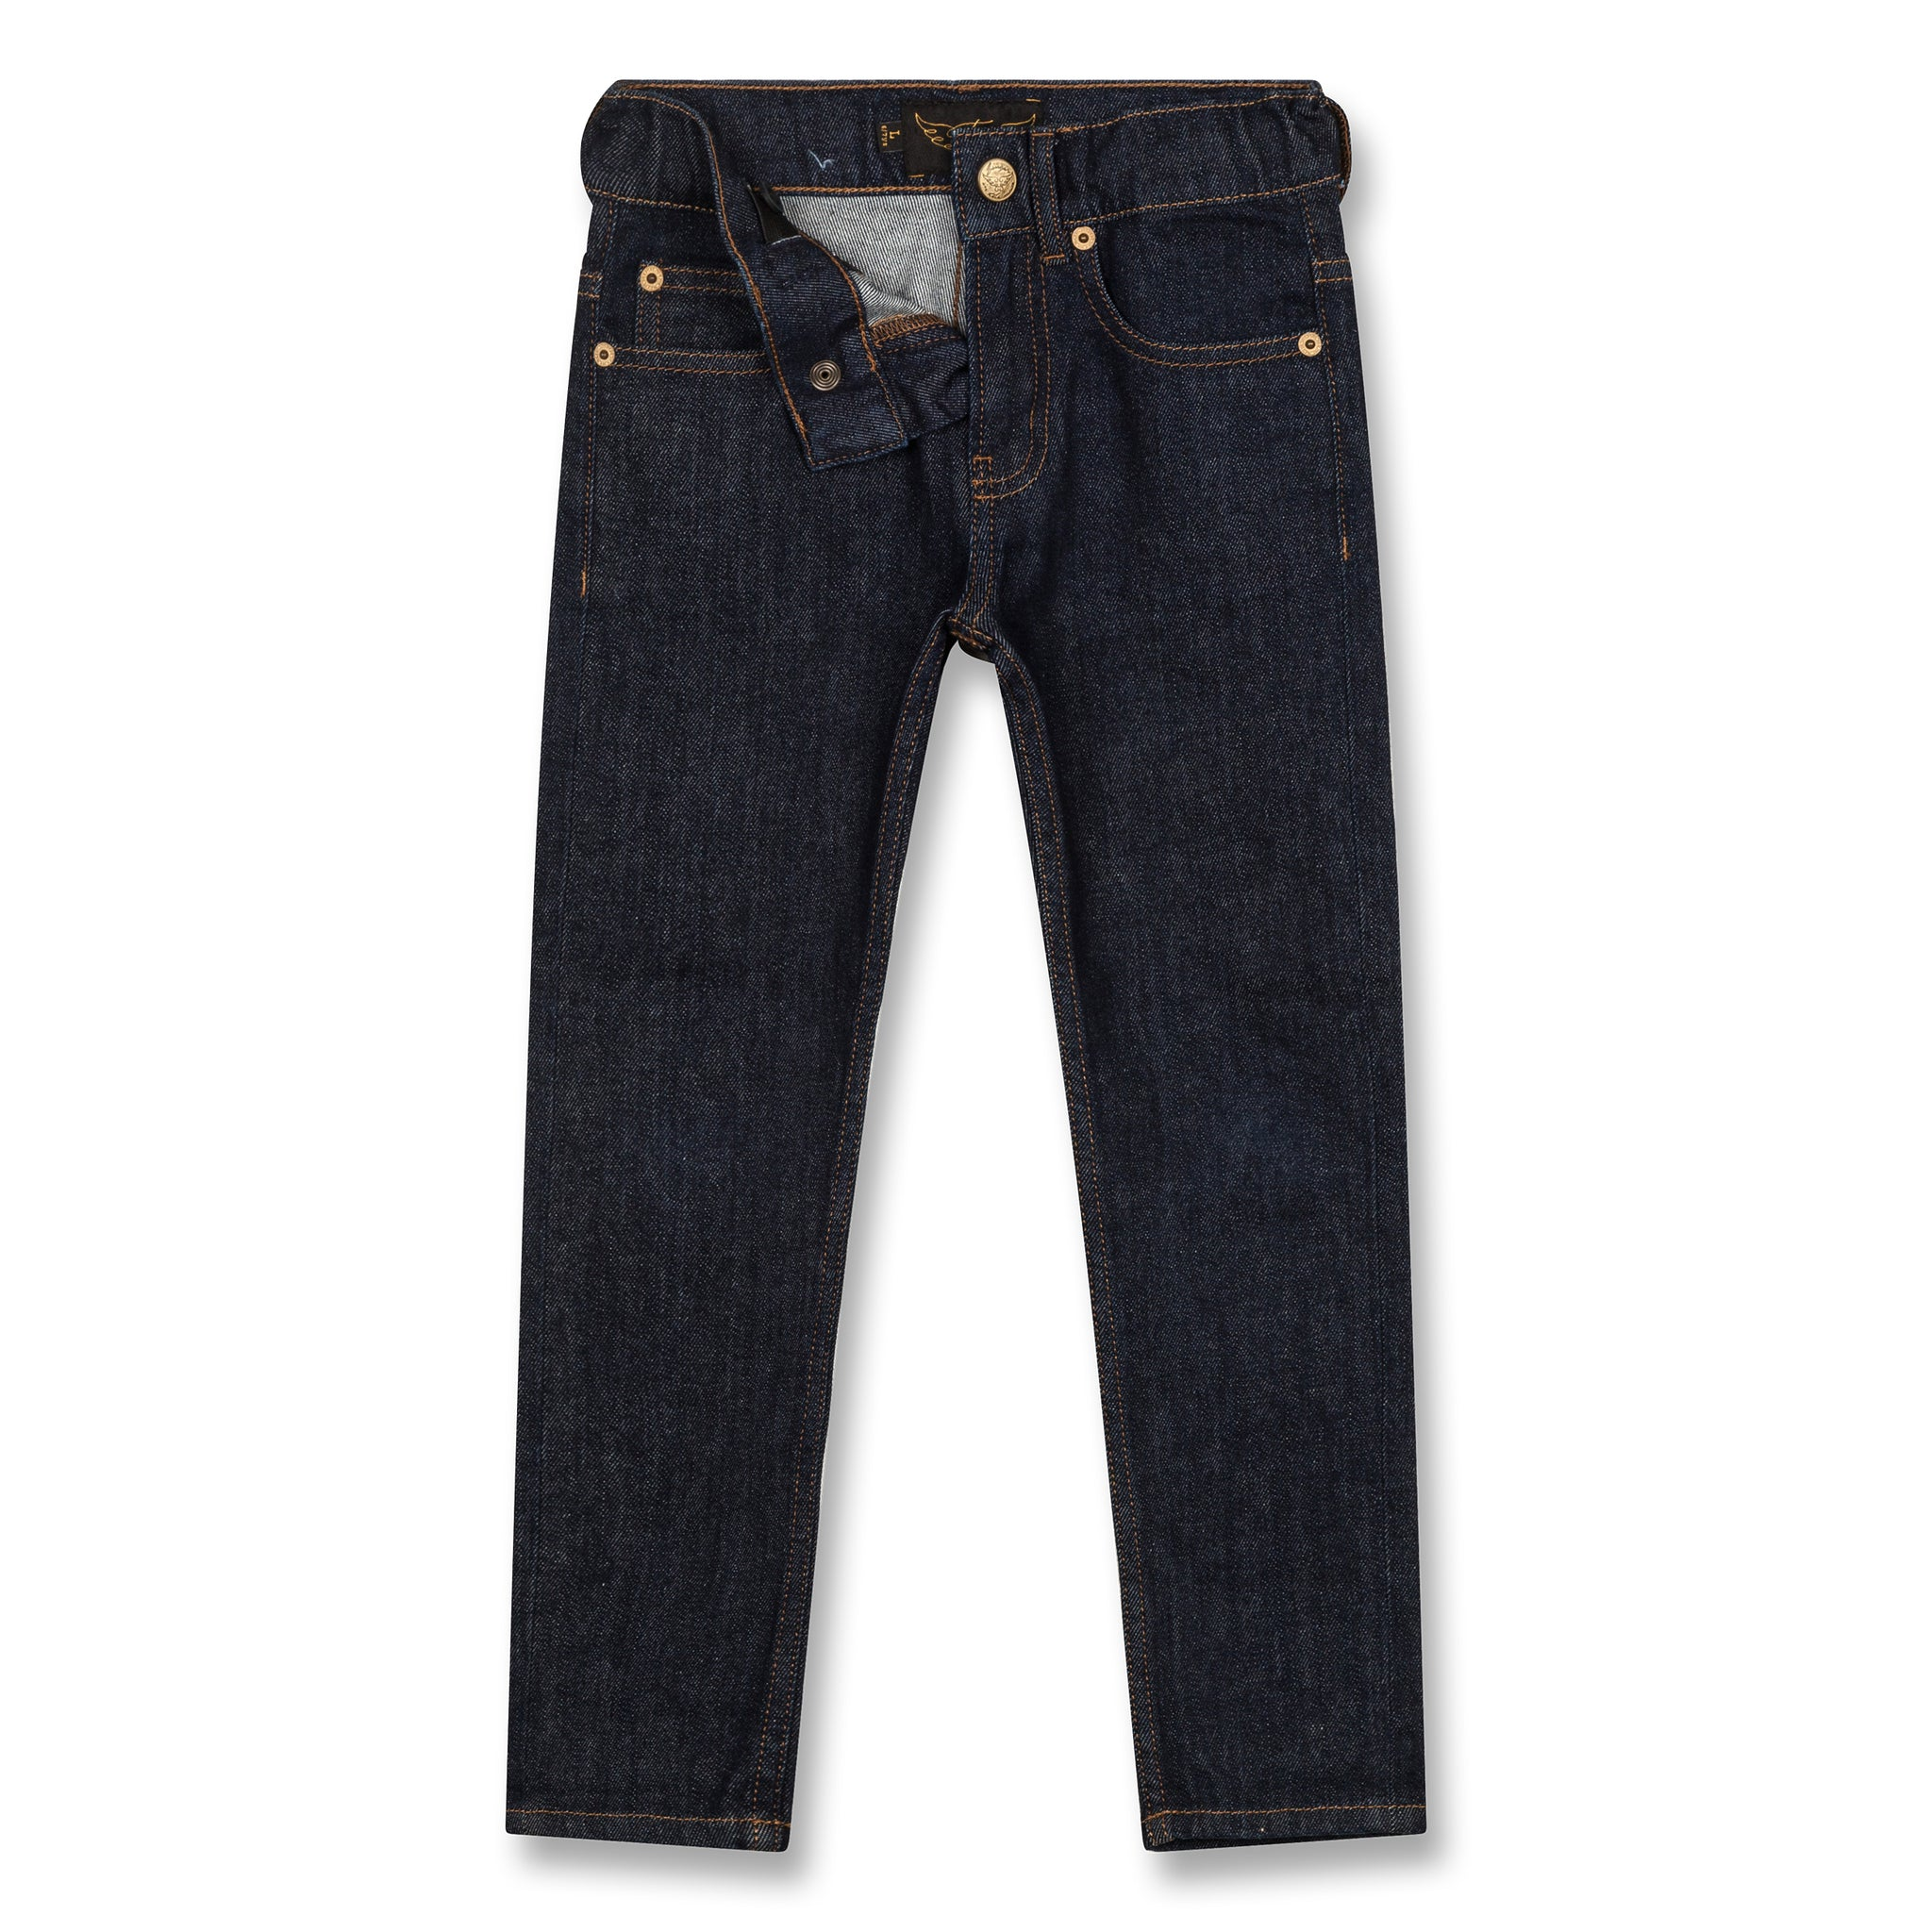 NEW NORTON Raw Denim Blue - 5 Pocket Straight Fit Jeans 2